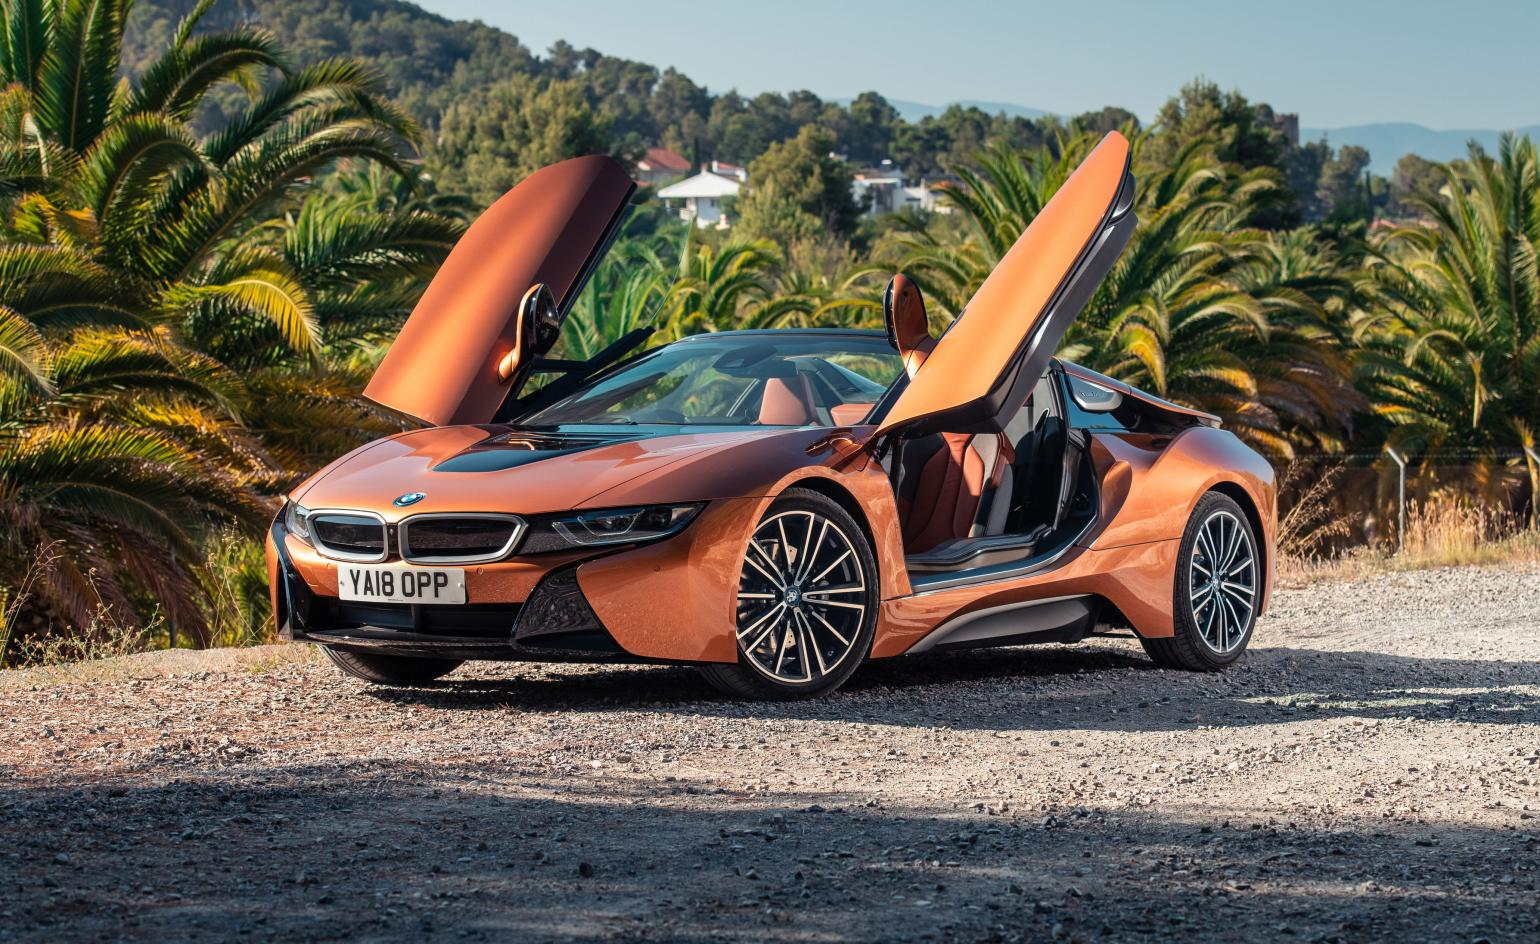 Bmw I8 Roadster Review And Test Drive 2018 Wallpaper